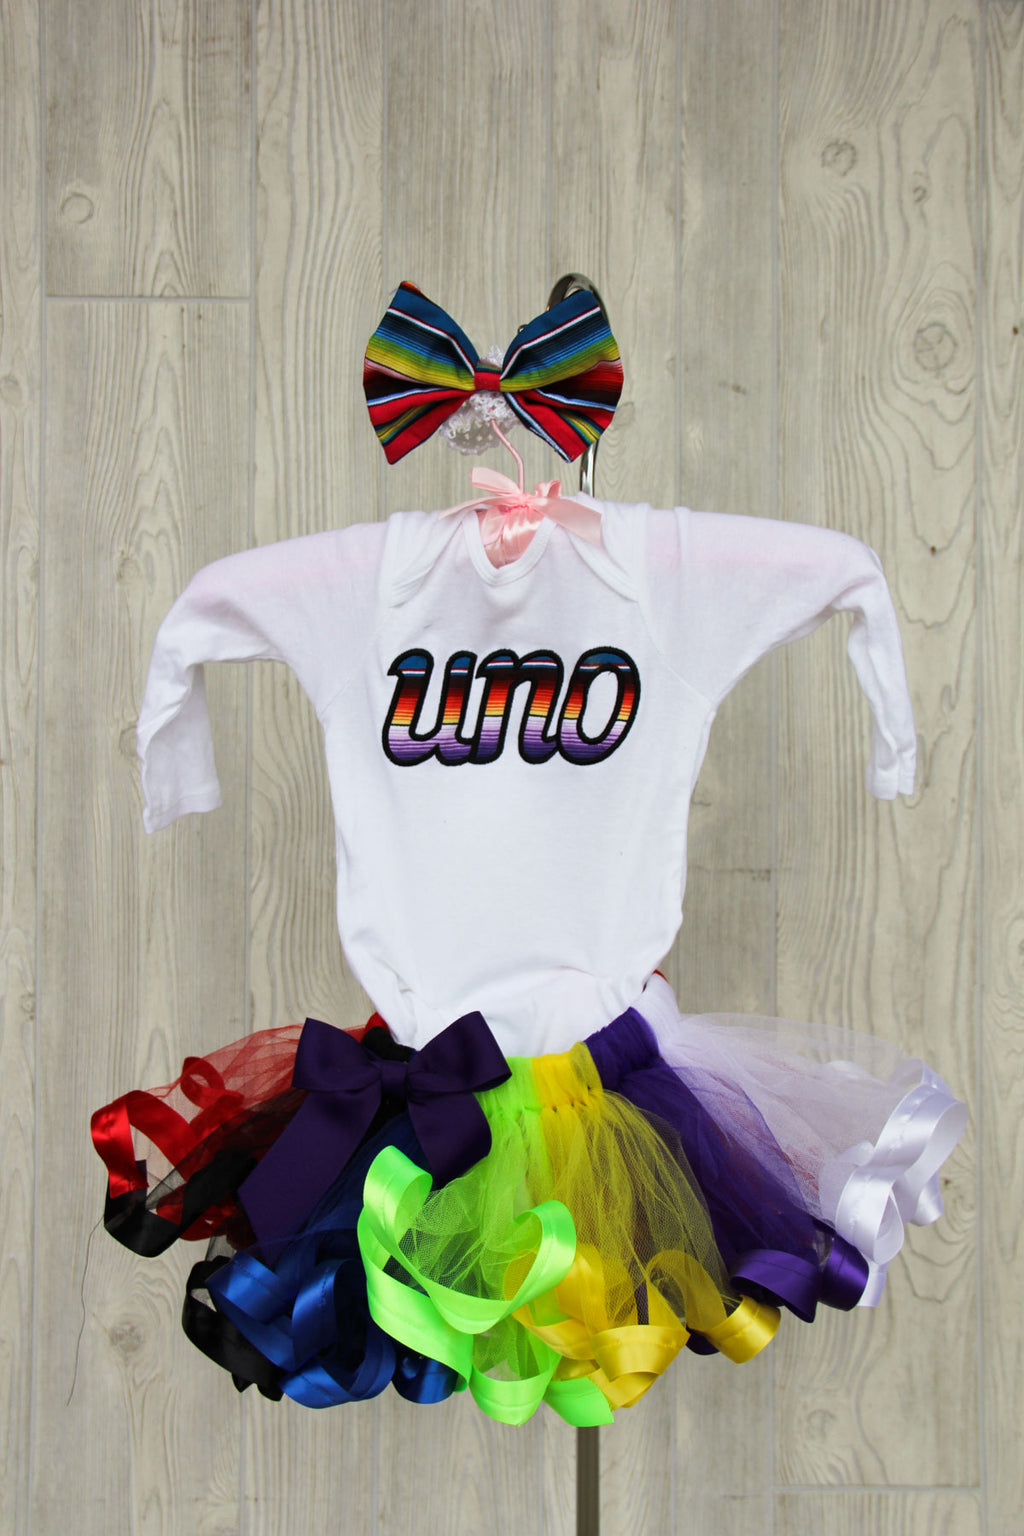 Uno Birthday Outfit - First Birthday Outfit